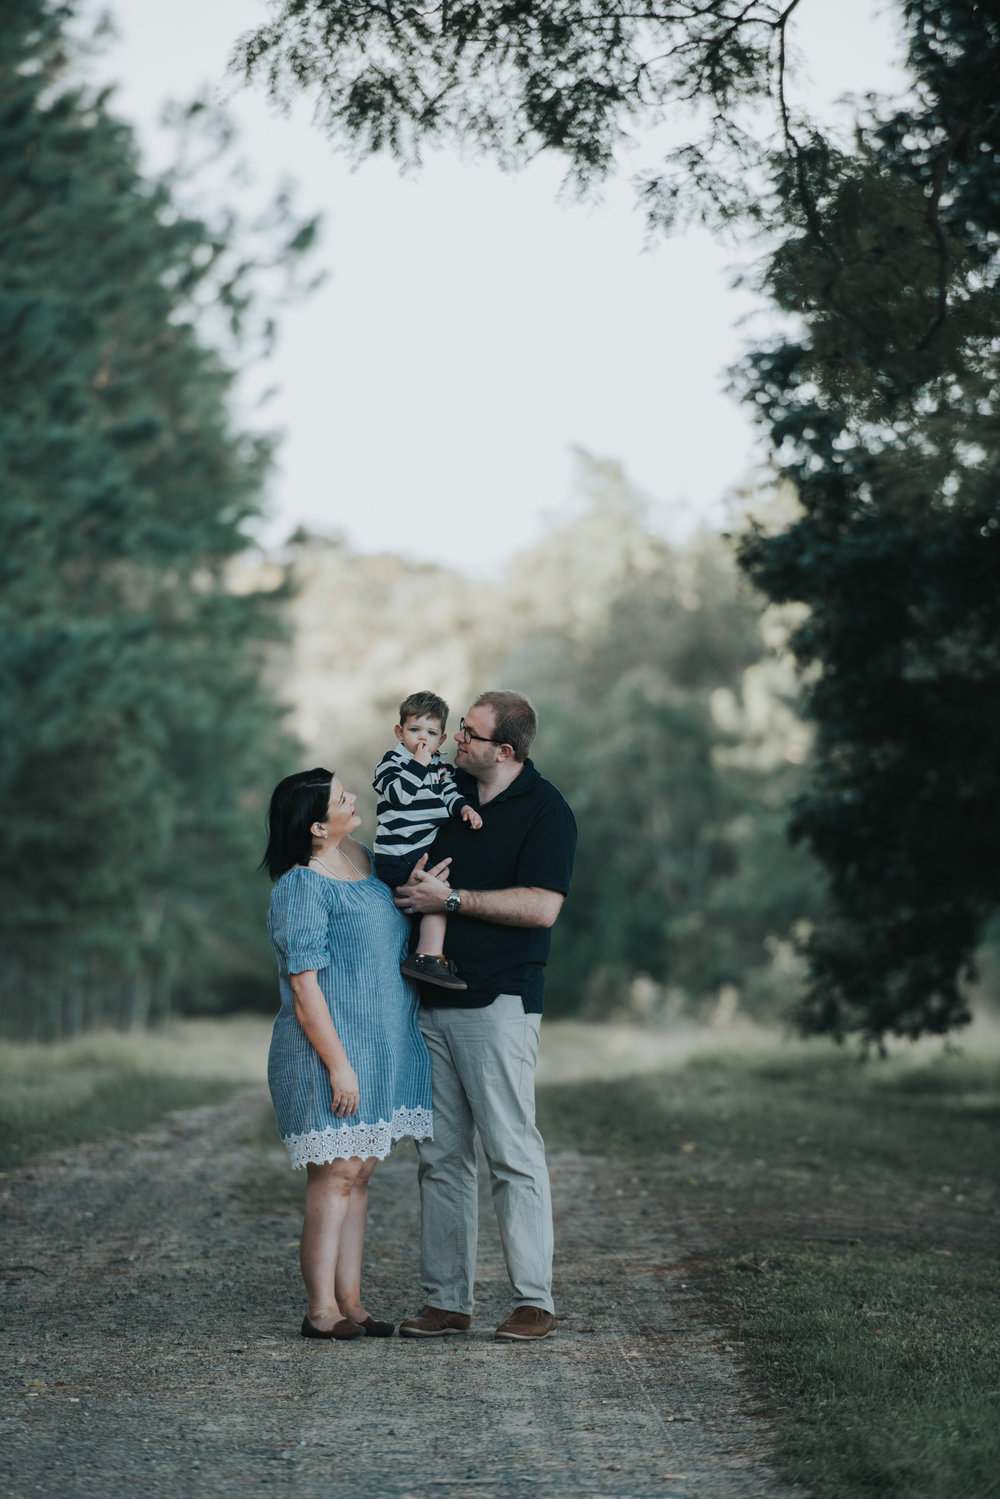 Brisbane Family Photography | Lifestyle Photographer-13.jpg